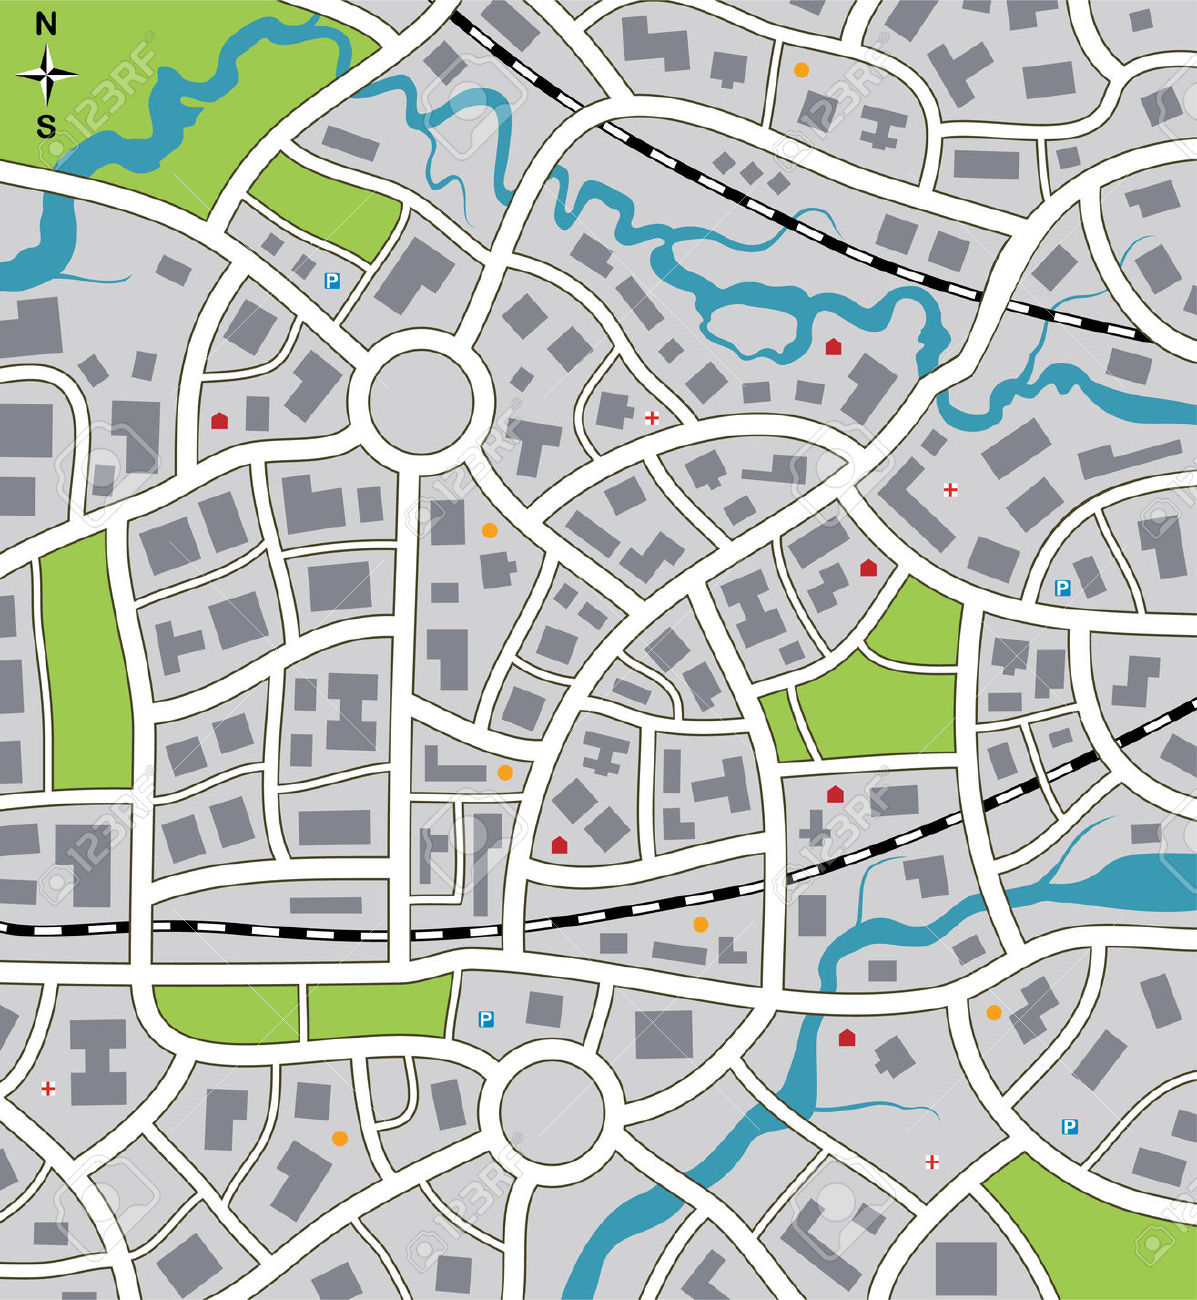 City road map clipart jpg transparent download City road map clipart - ClipartFest jpg transparent download